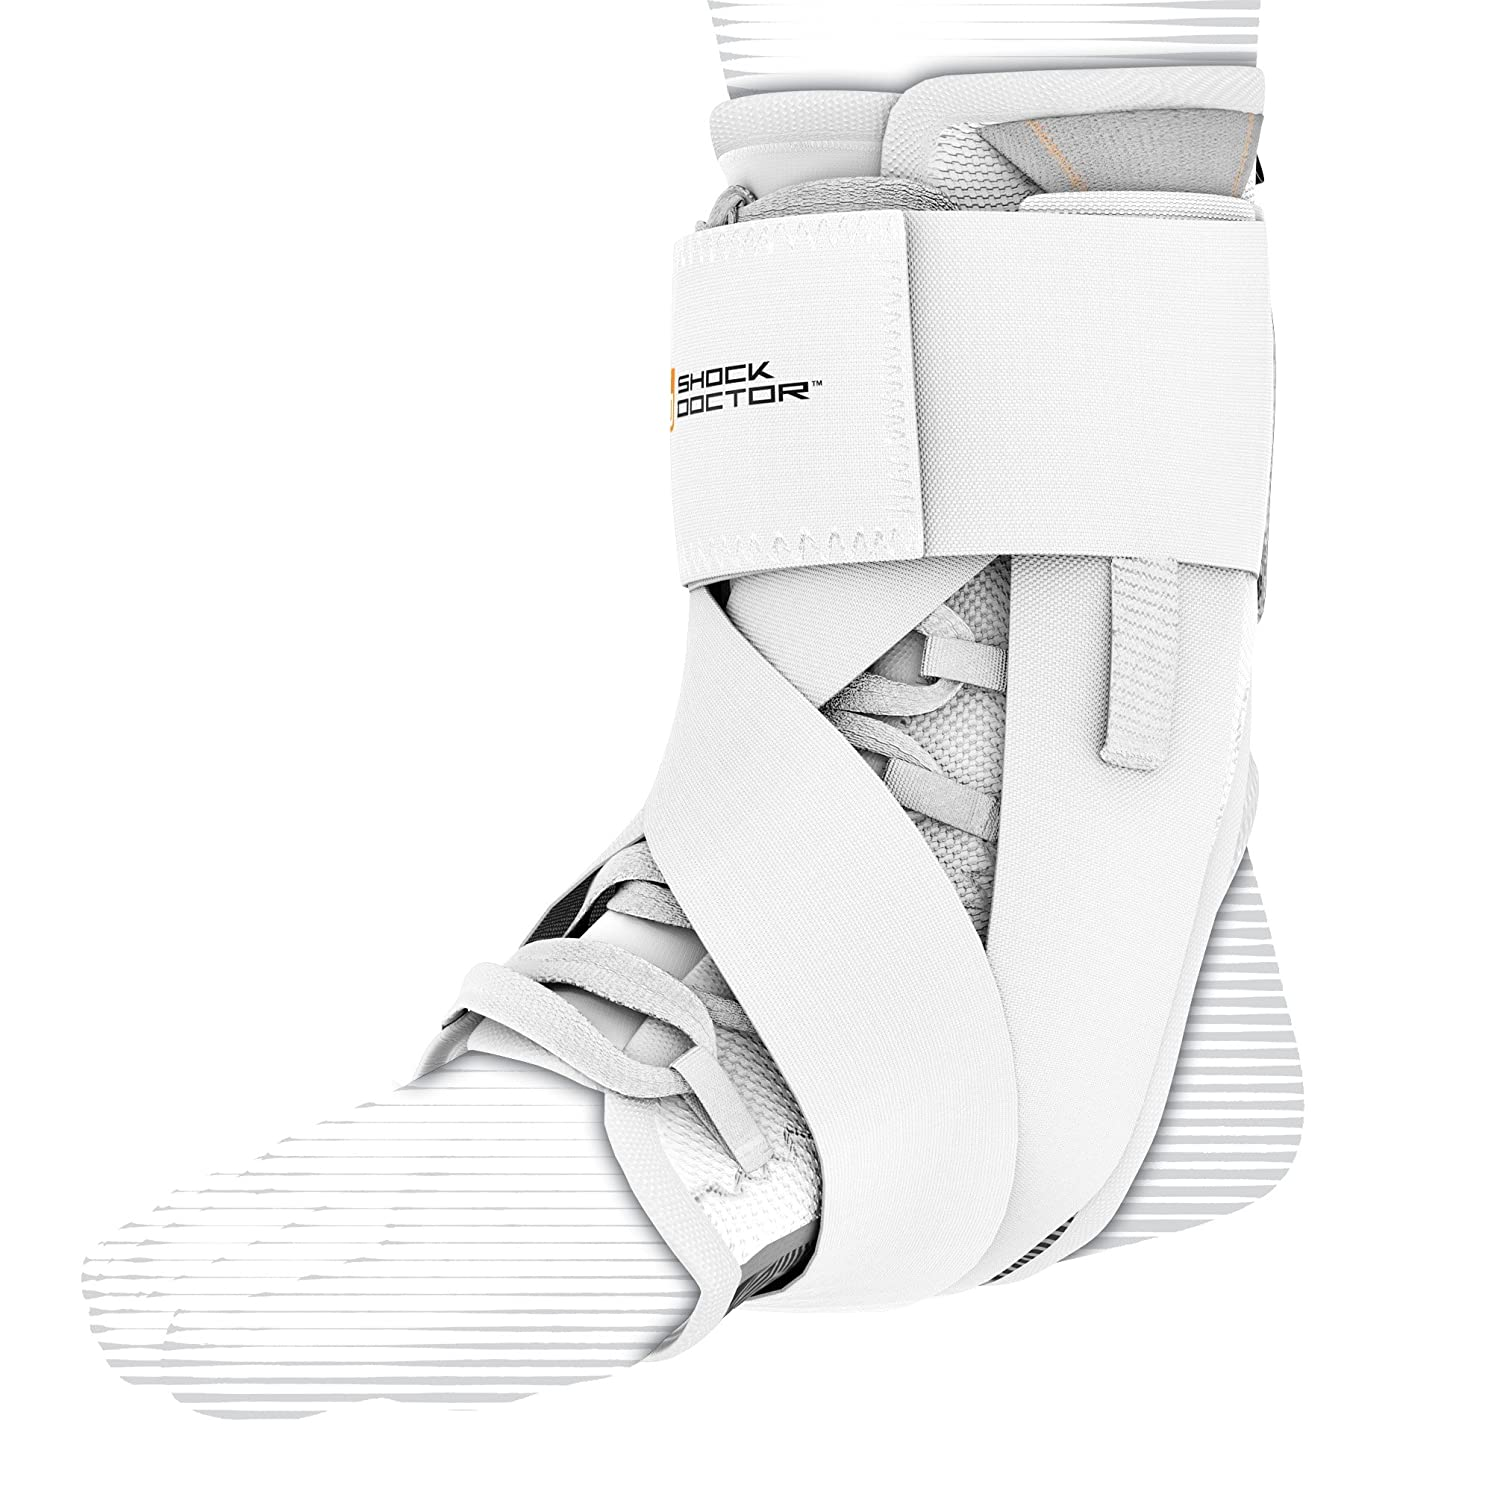 Shock Doctor 851 Ultra Wrap Laced Ankle Brace uitwra-sizcol